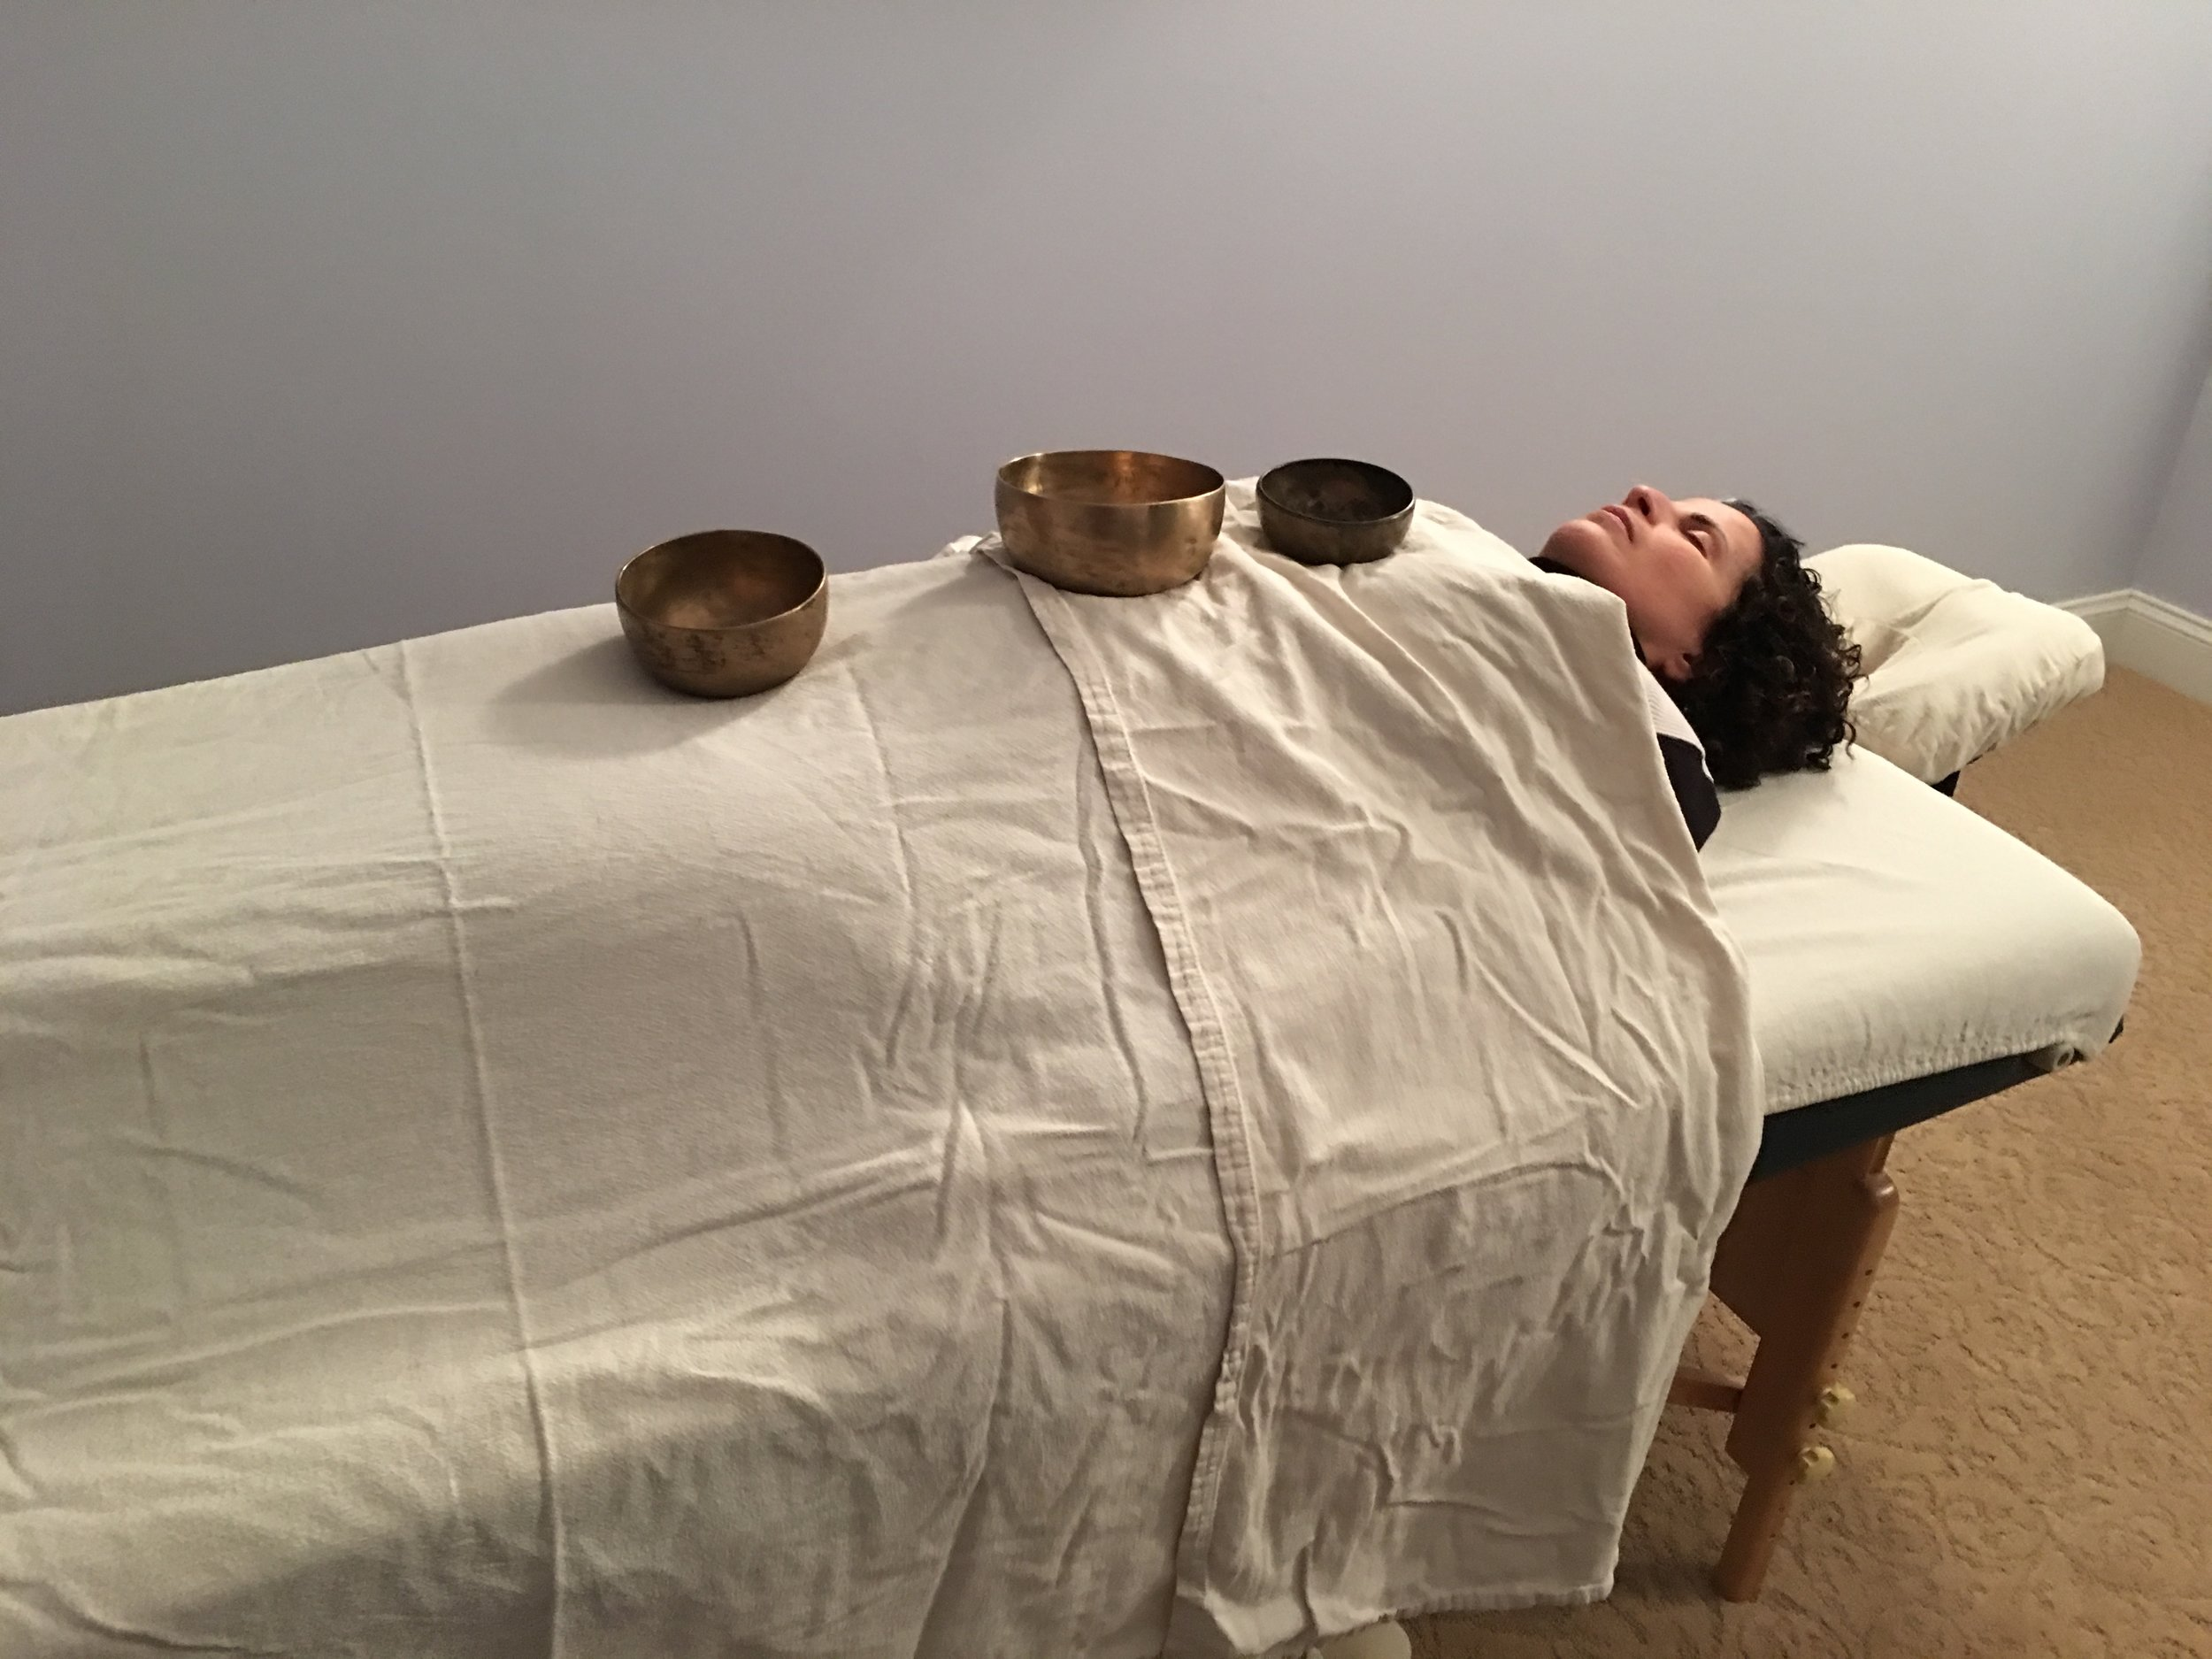 Antique sound bowls are placed on or around the body to clear old energies and open healing pathways.